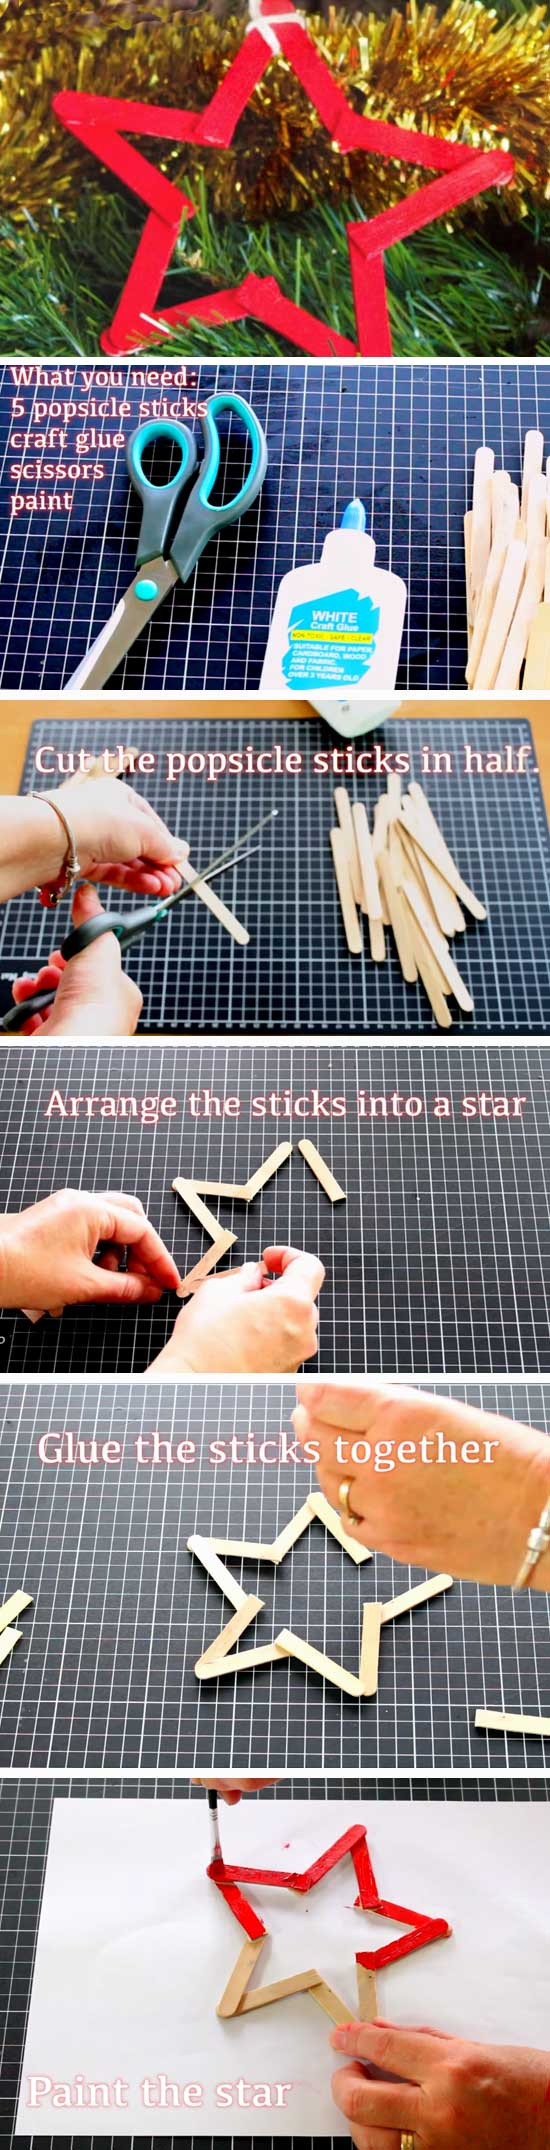 29 DIY Ideas and Tutorials to Recycle Popsicle Sticks for Christmas